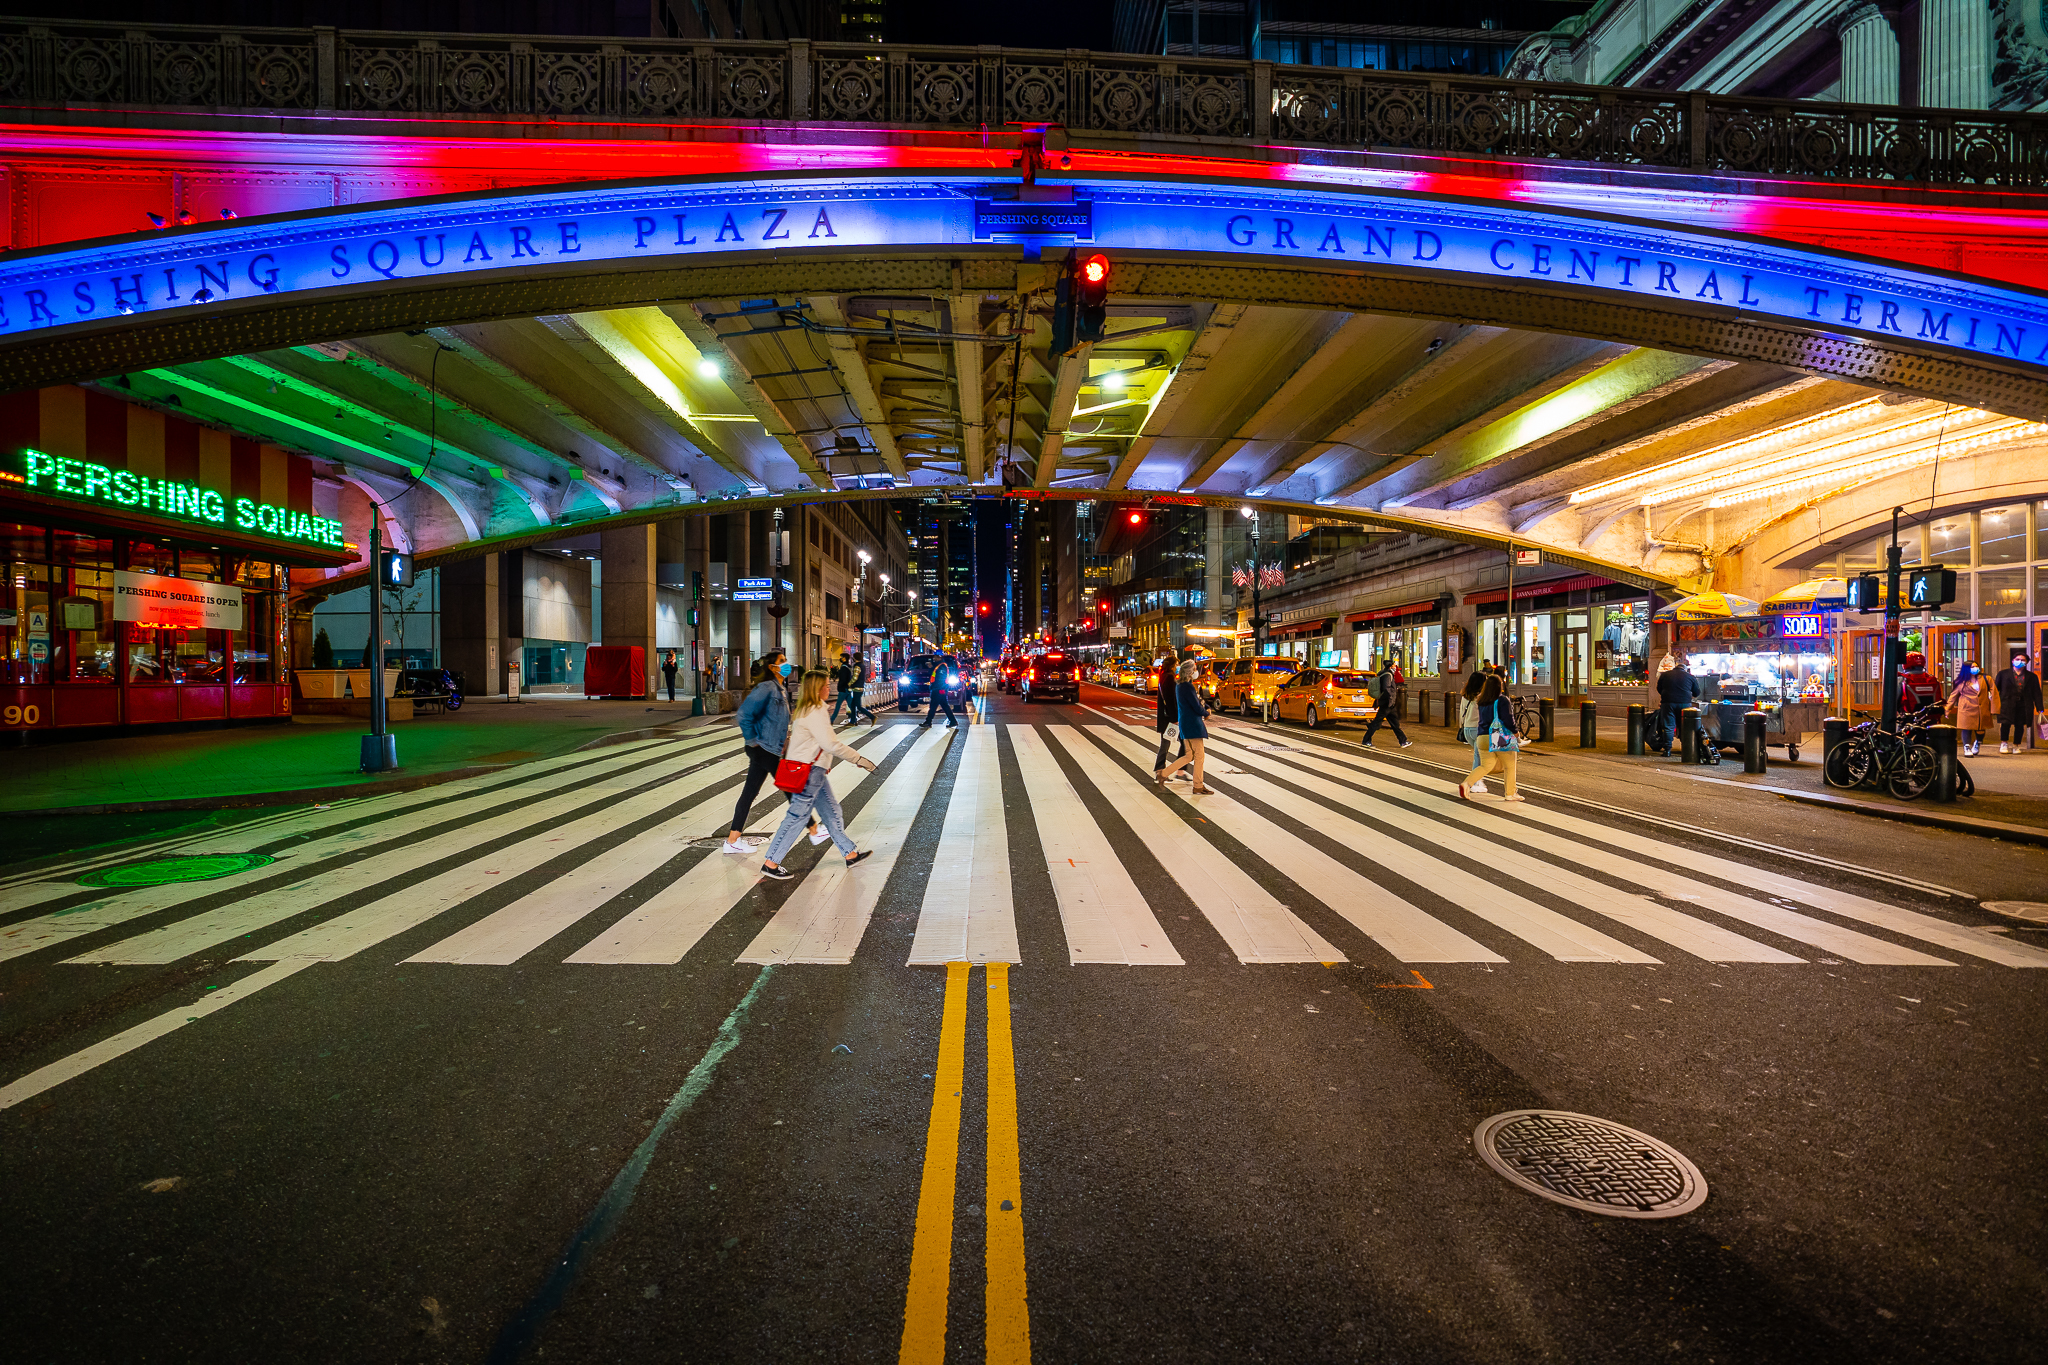 a wide angle photo of the bridge at pershing square new york grand central station